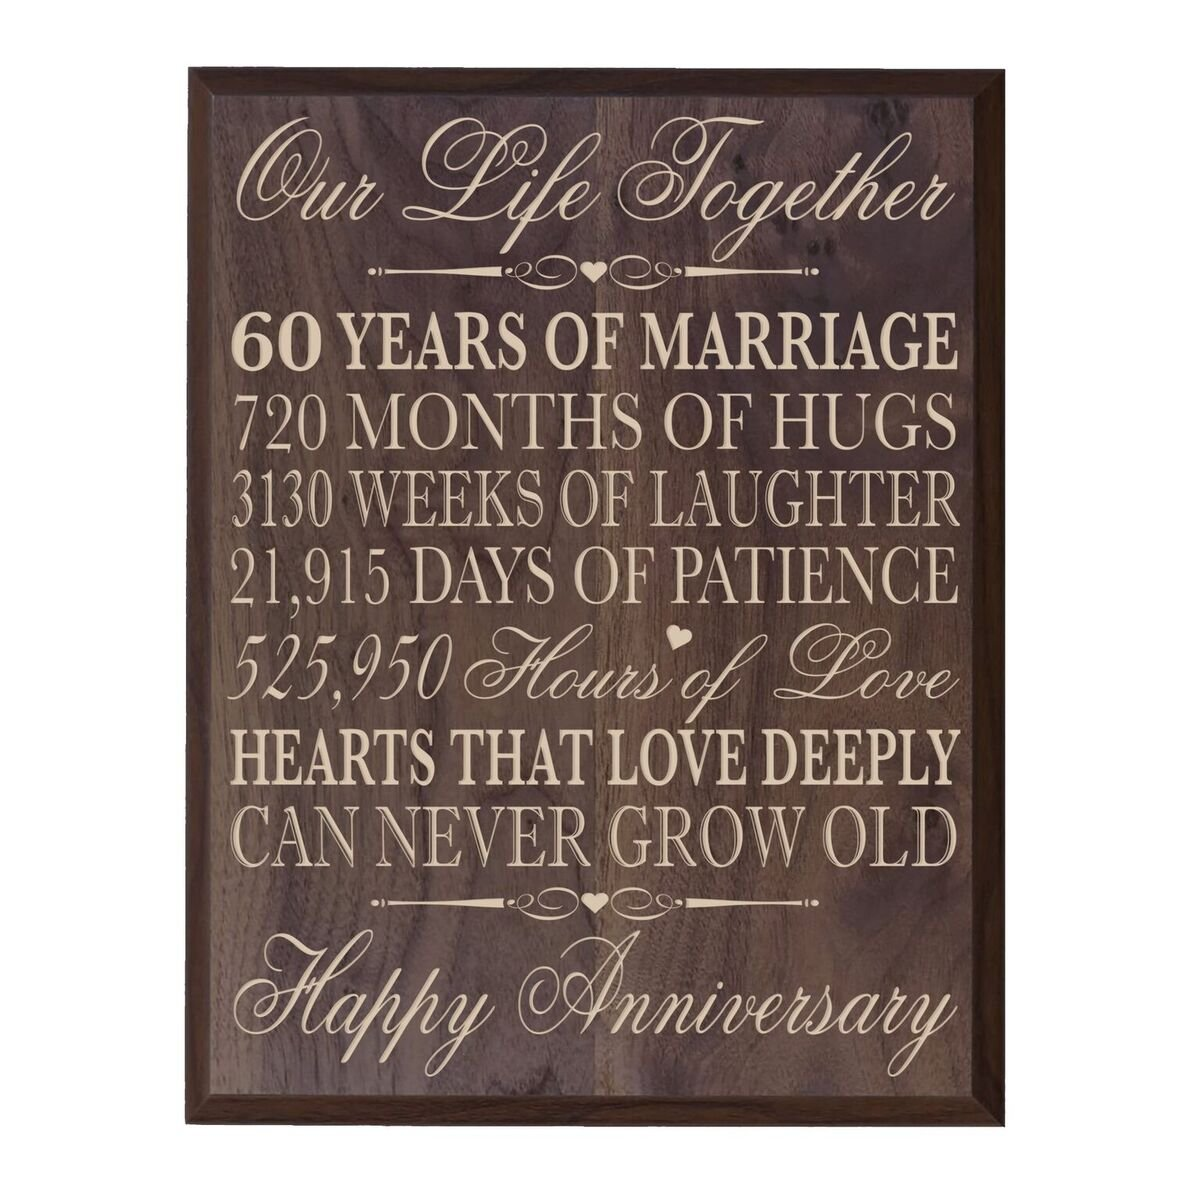 LifeSong Milestones 60th Wedding Anniversary Wall Plaque Gifts for Couple, 60th for Her,60th Wedding for Him 12'' W X 15'' H Wall Plaque (Grand Walnut)